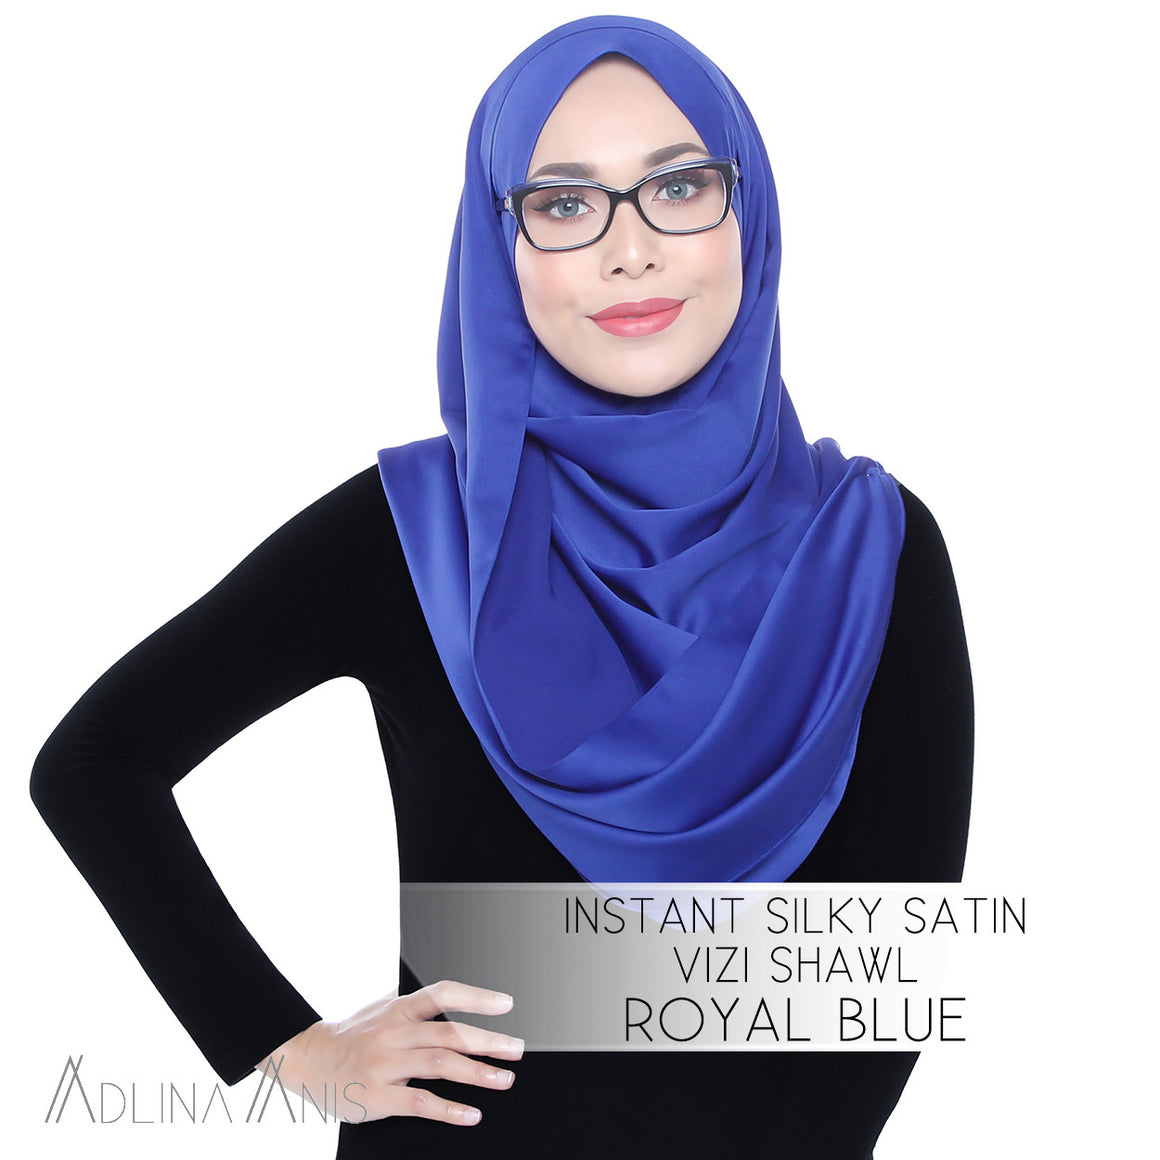 Instant Silky Satin Vizi Shawl - Royal Blue